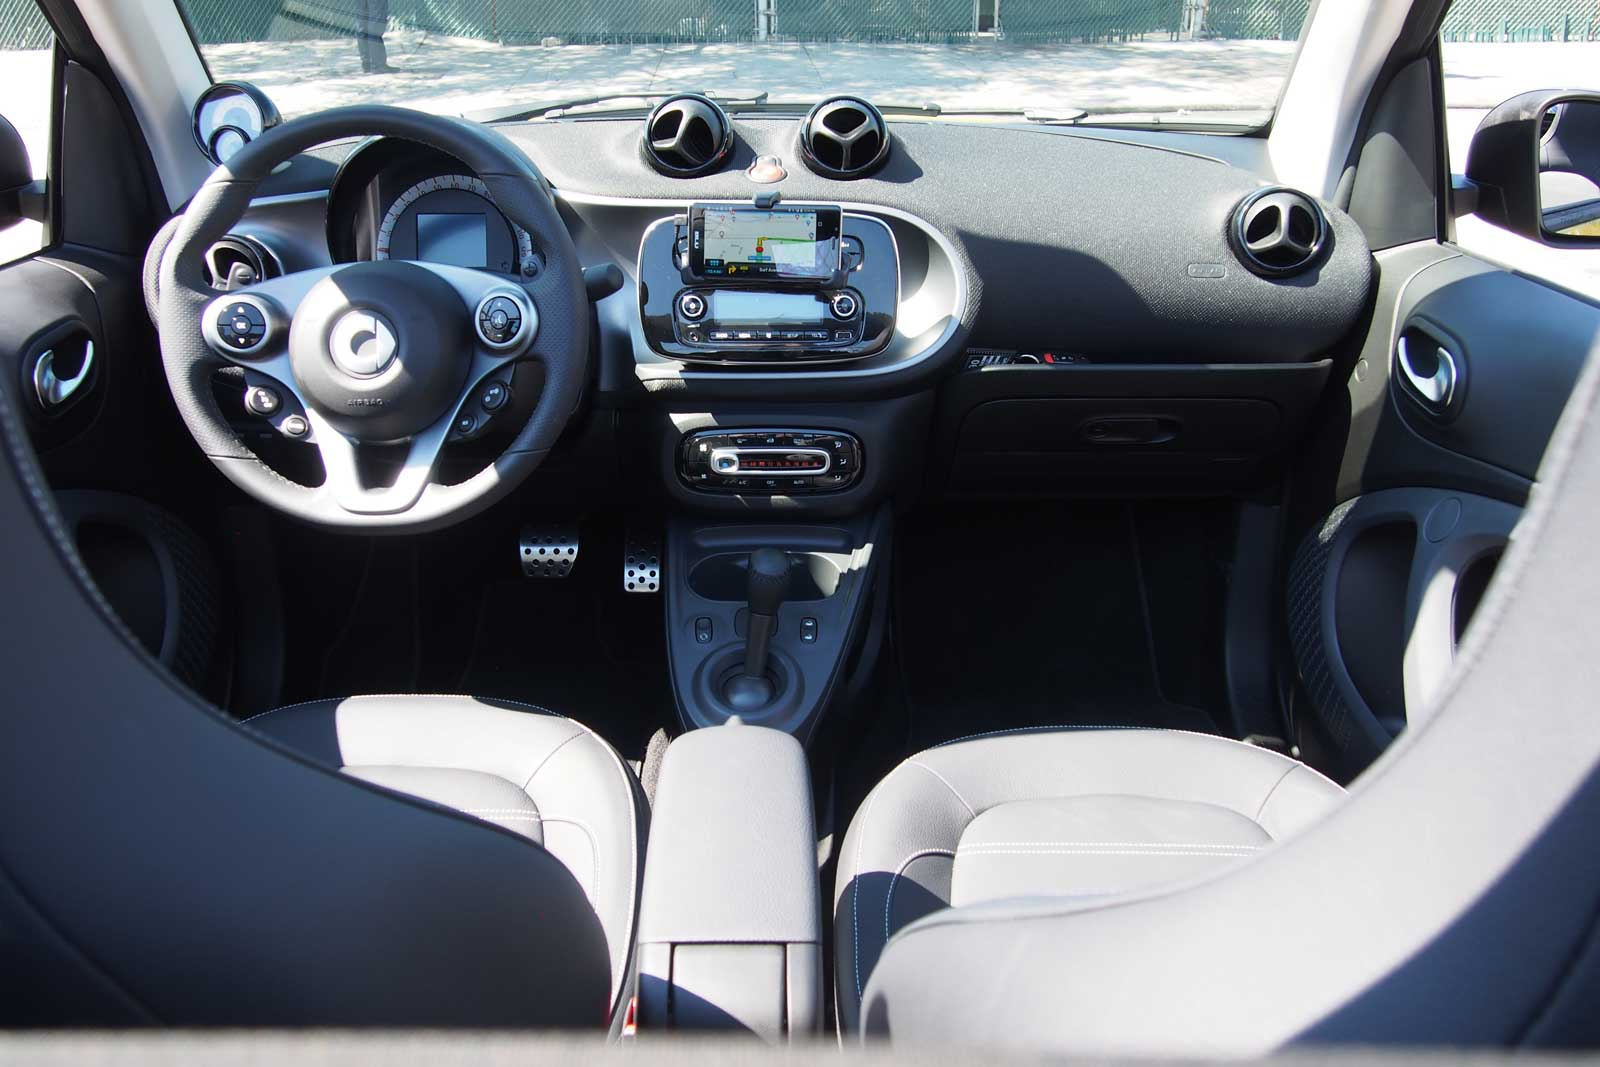 2017 Smart Fortwo Cabriolet Interior 03